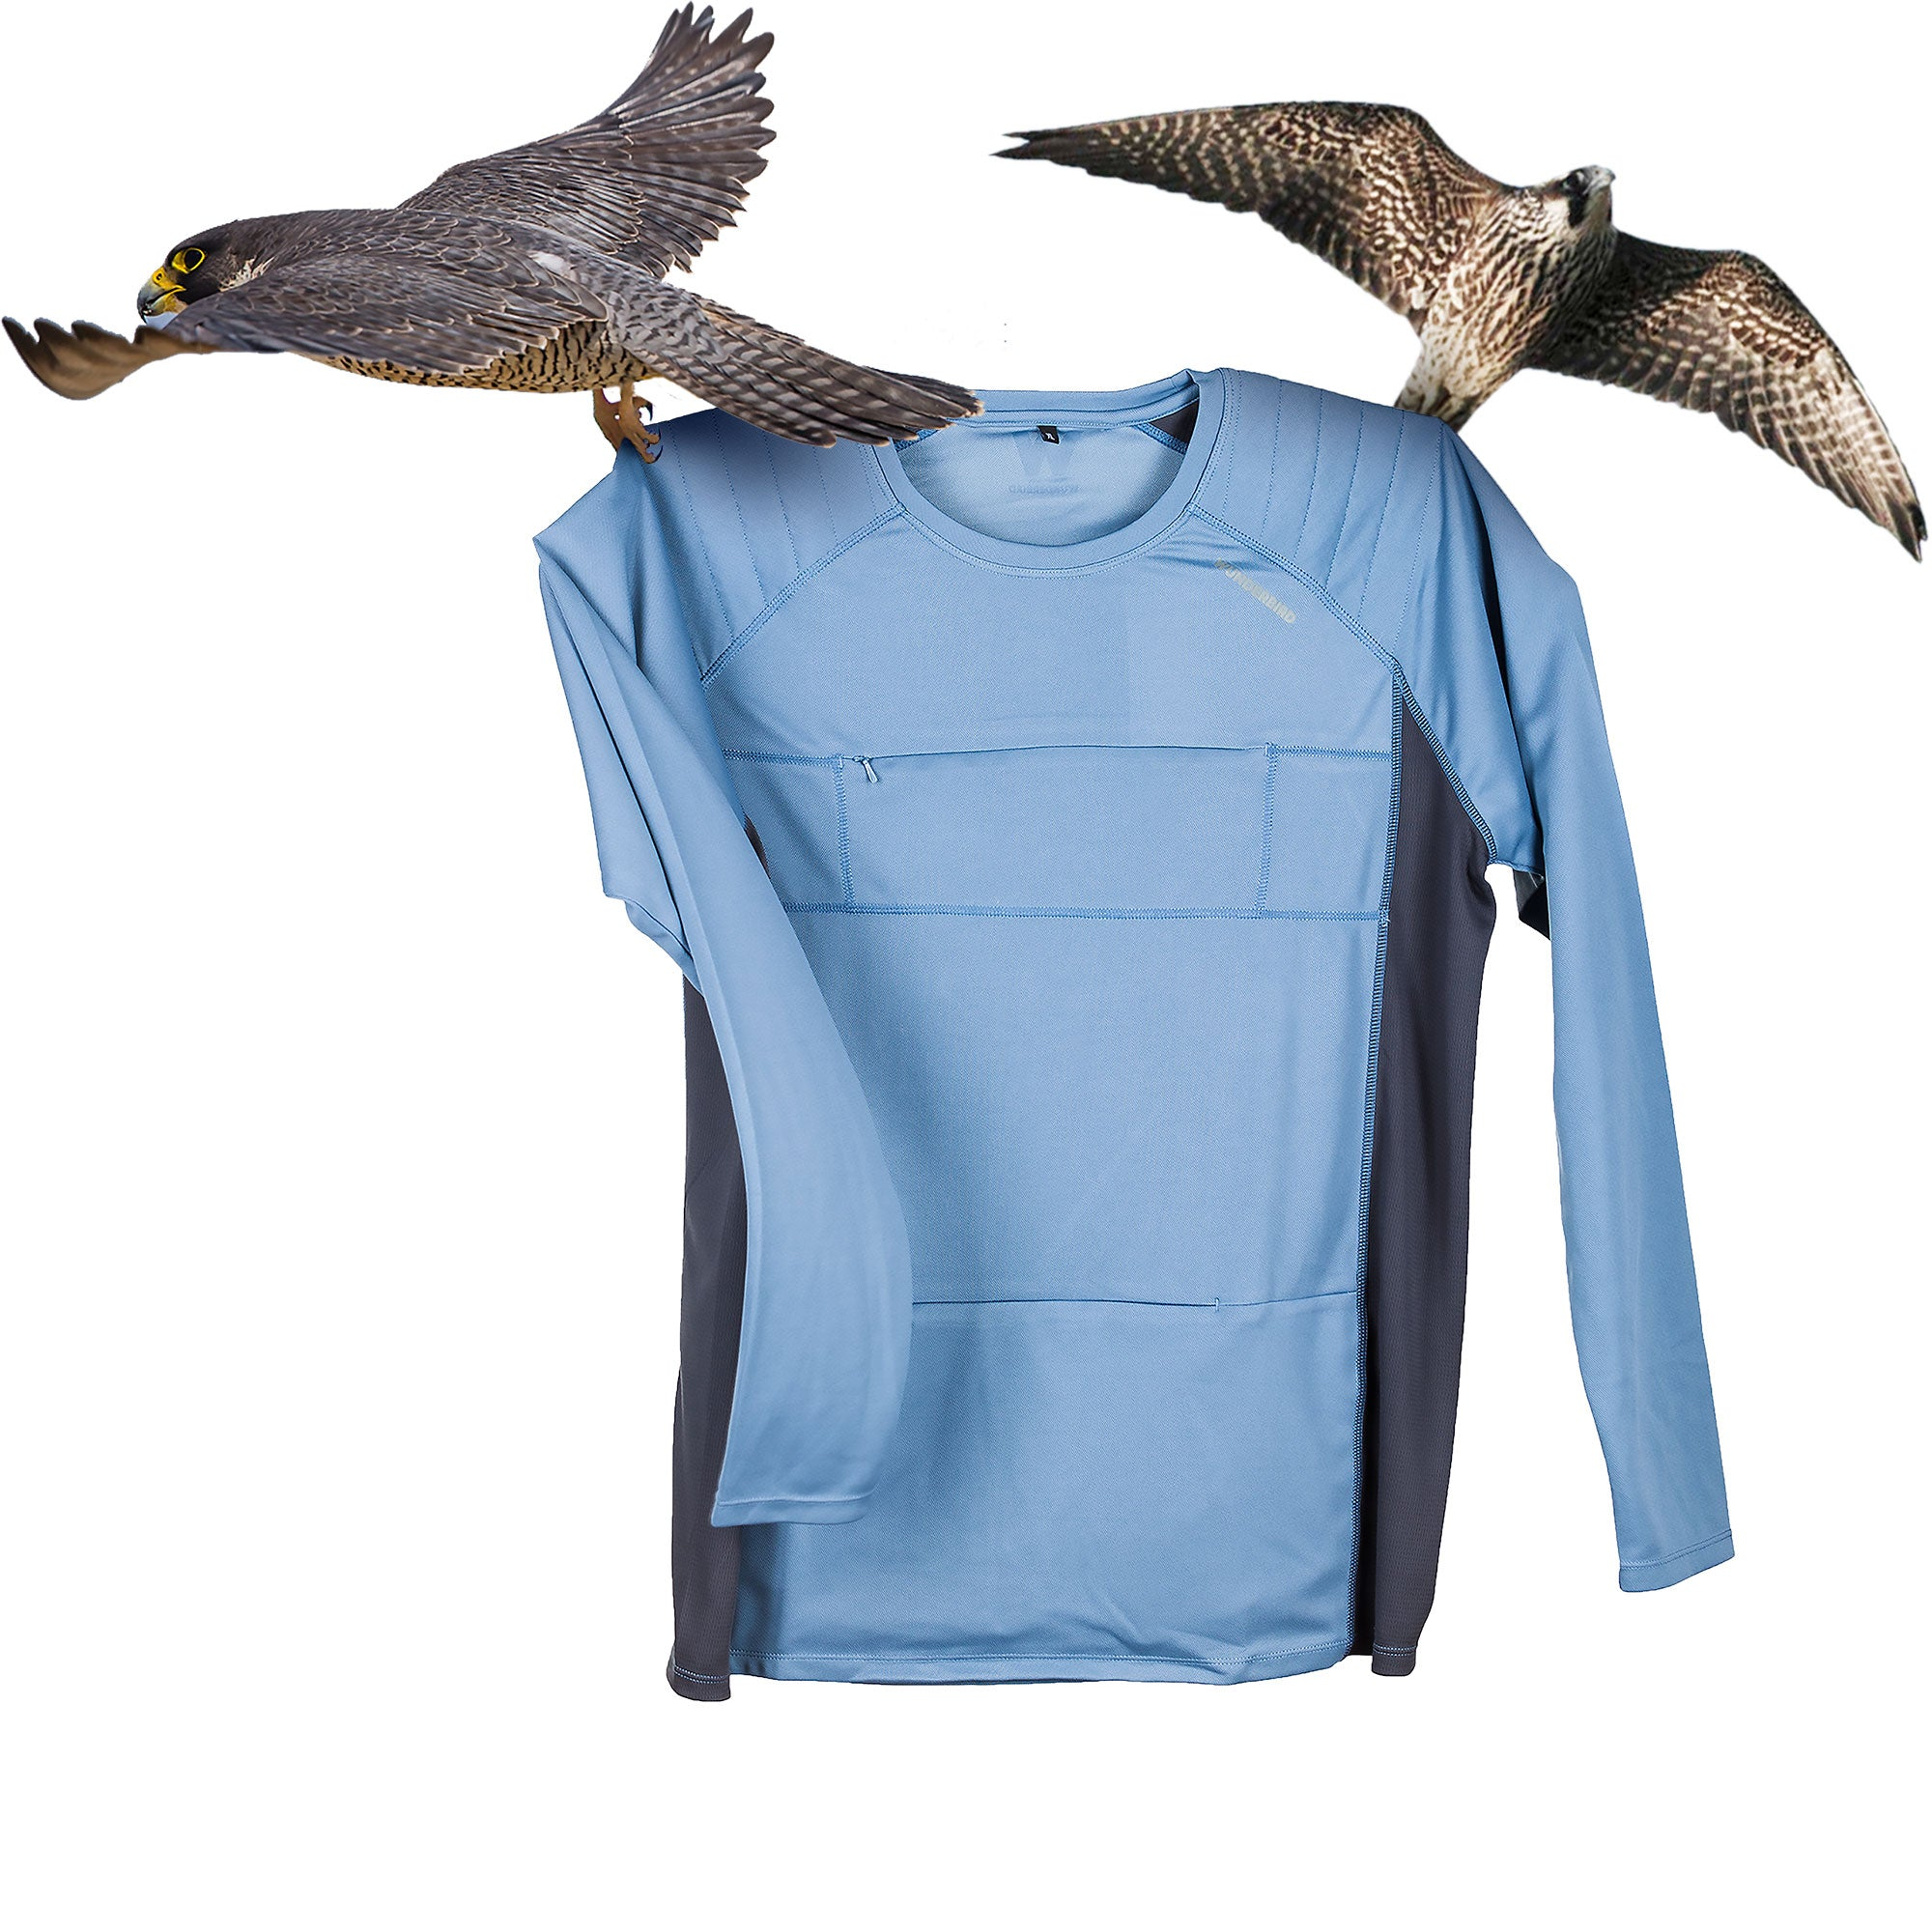 The Peregrine Long Sleeved Tee - blue.  A birdwatching clothing gem.